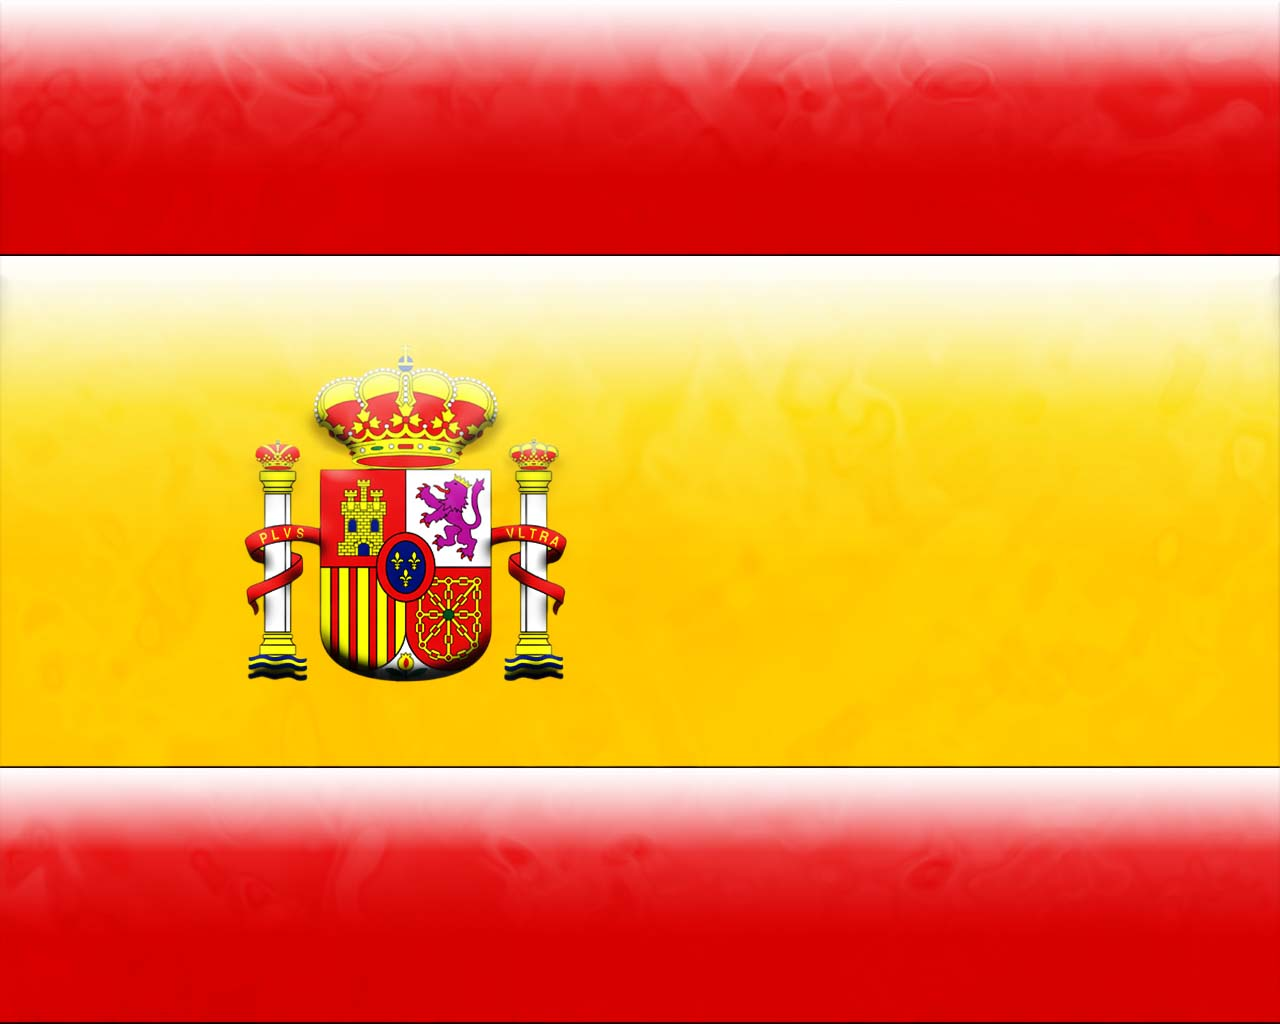 Download Wallpapper Timnas Spanyol ( Sepak Bola / SPAIN euro 2012 ...: silakankemari.blogspot.com/2012/06/download-wallpapper-timnas...